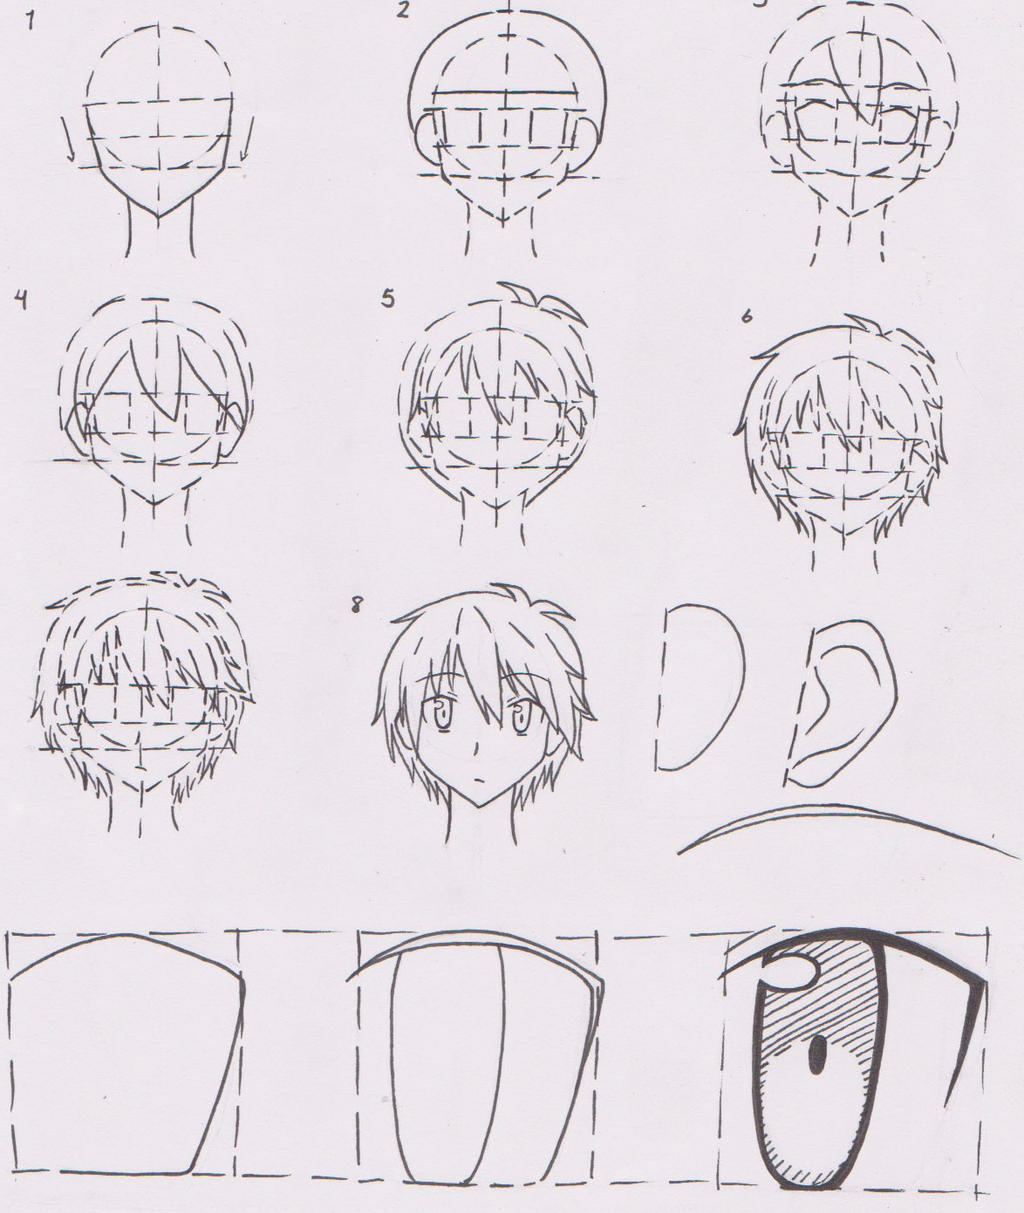 anime boy character face tutorial 01 sorata by futagofude 2insroid